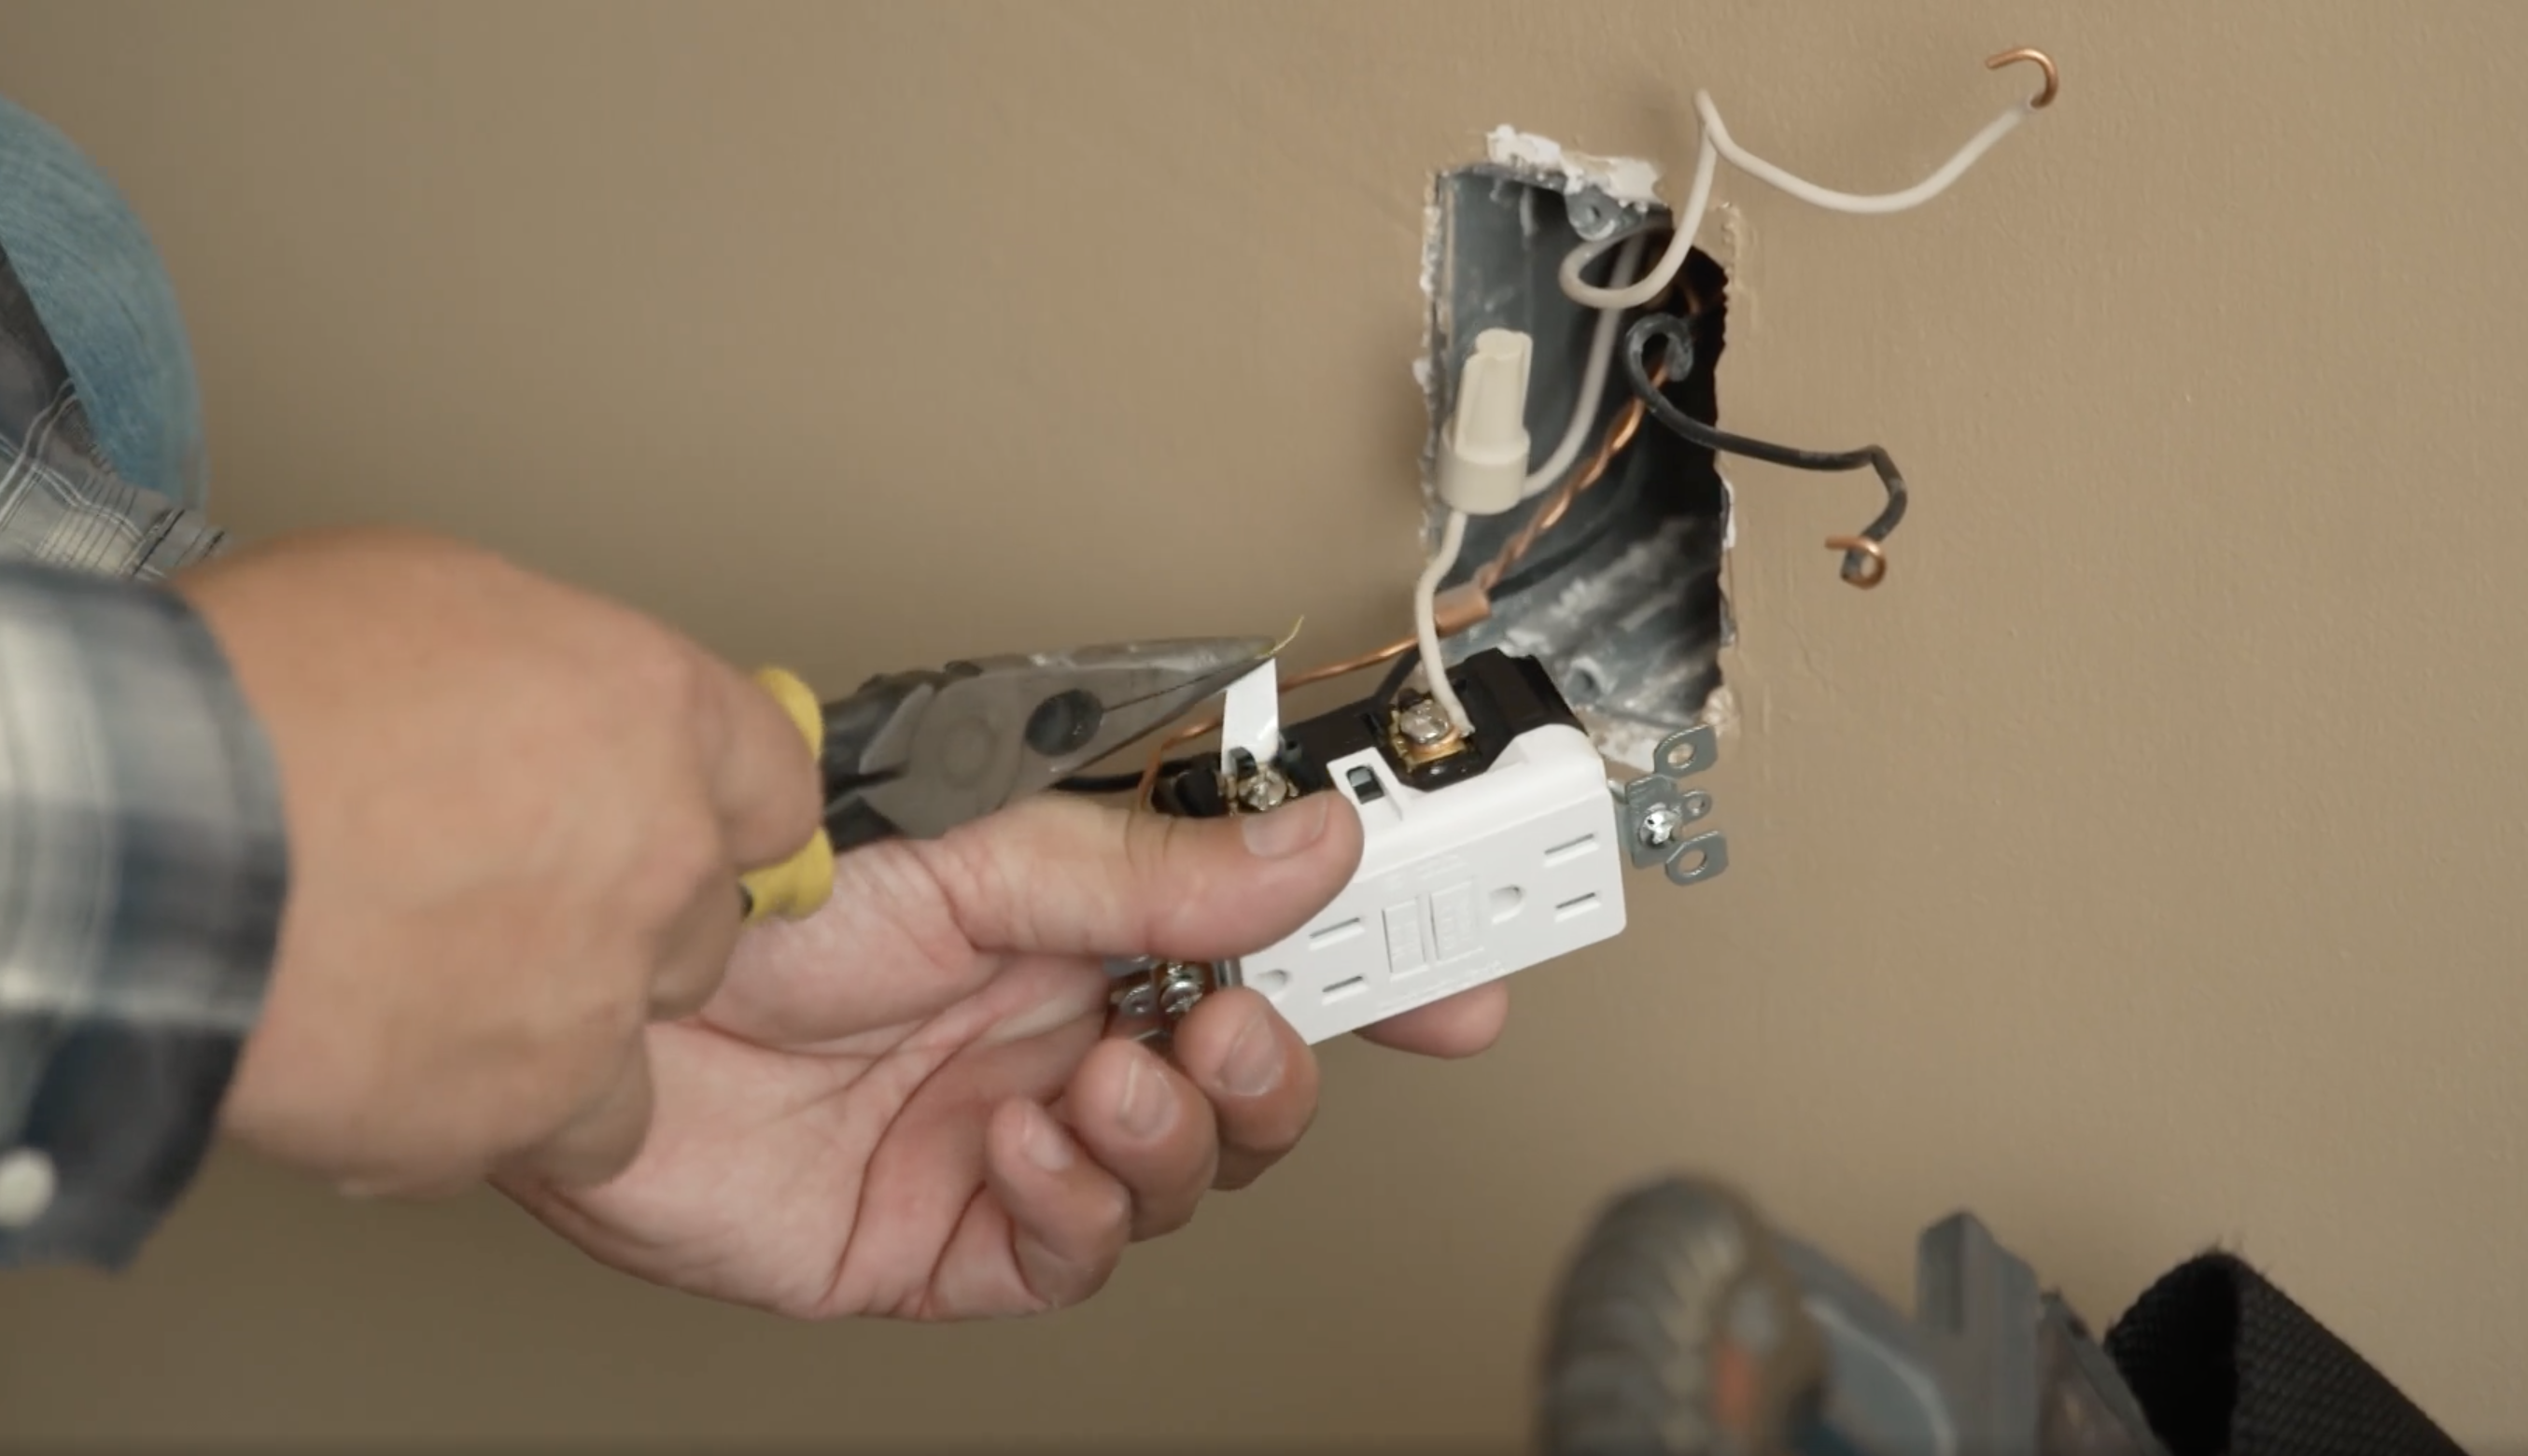 Installing an ACFI outlet